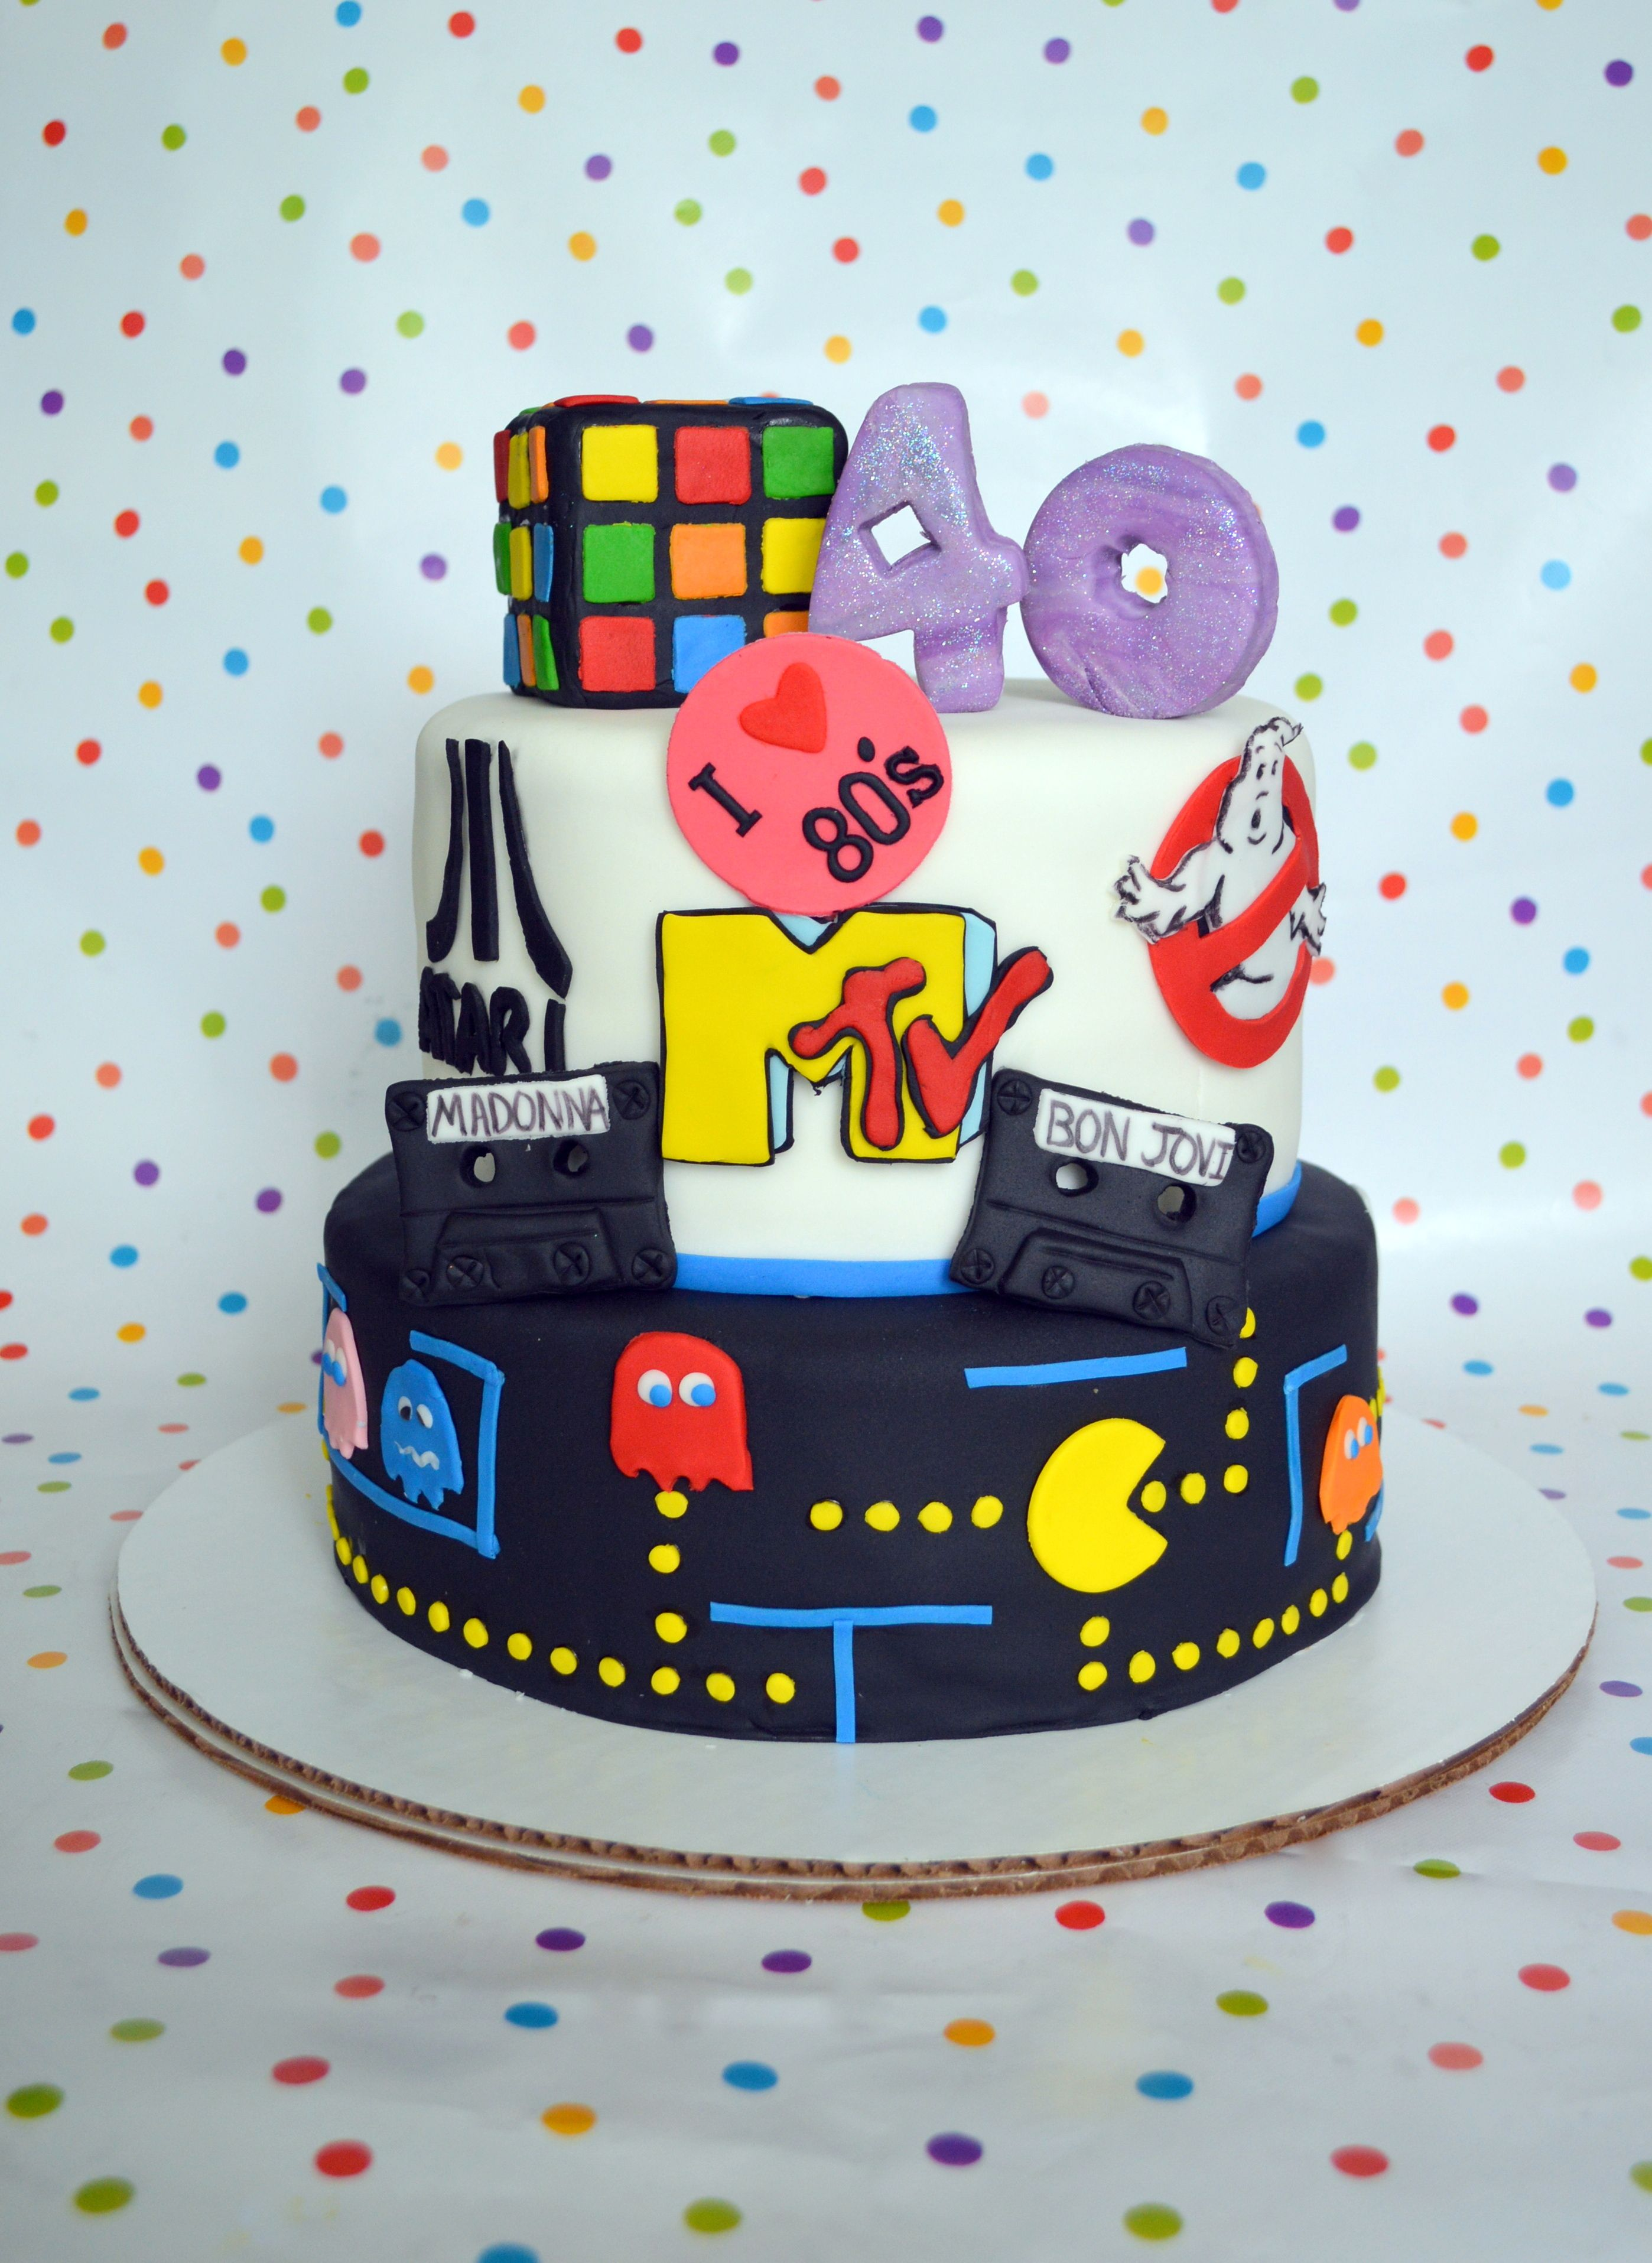 80 S Party Cake Decoration 100 Edible Cake Decorating Kits